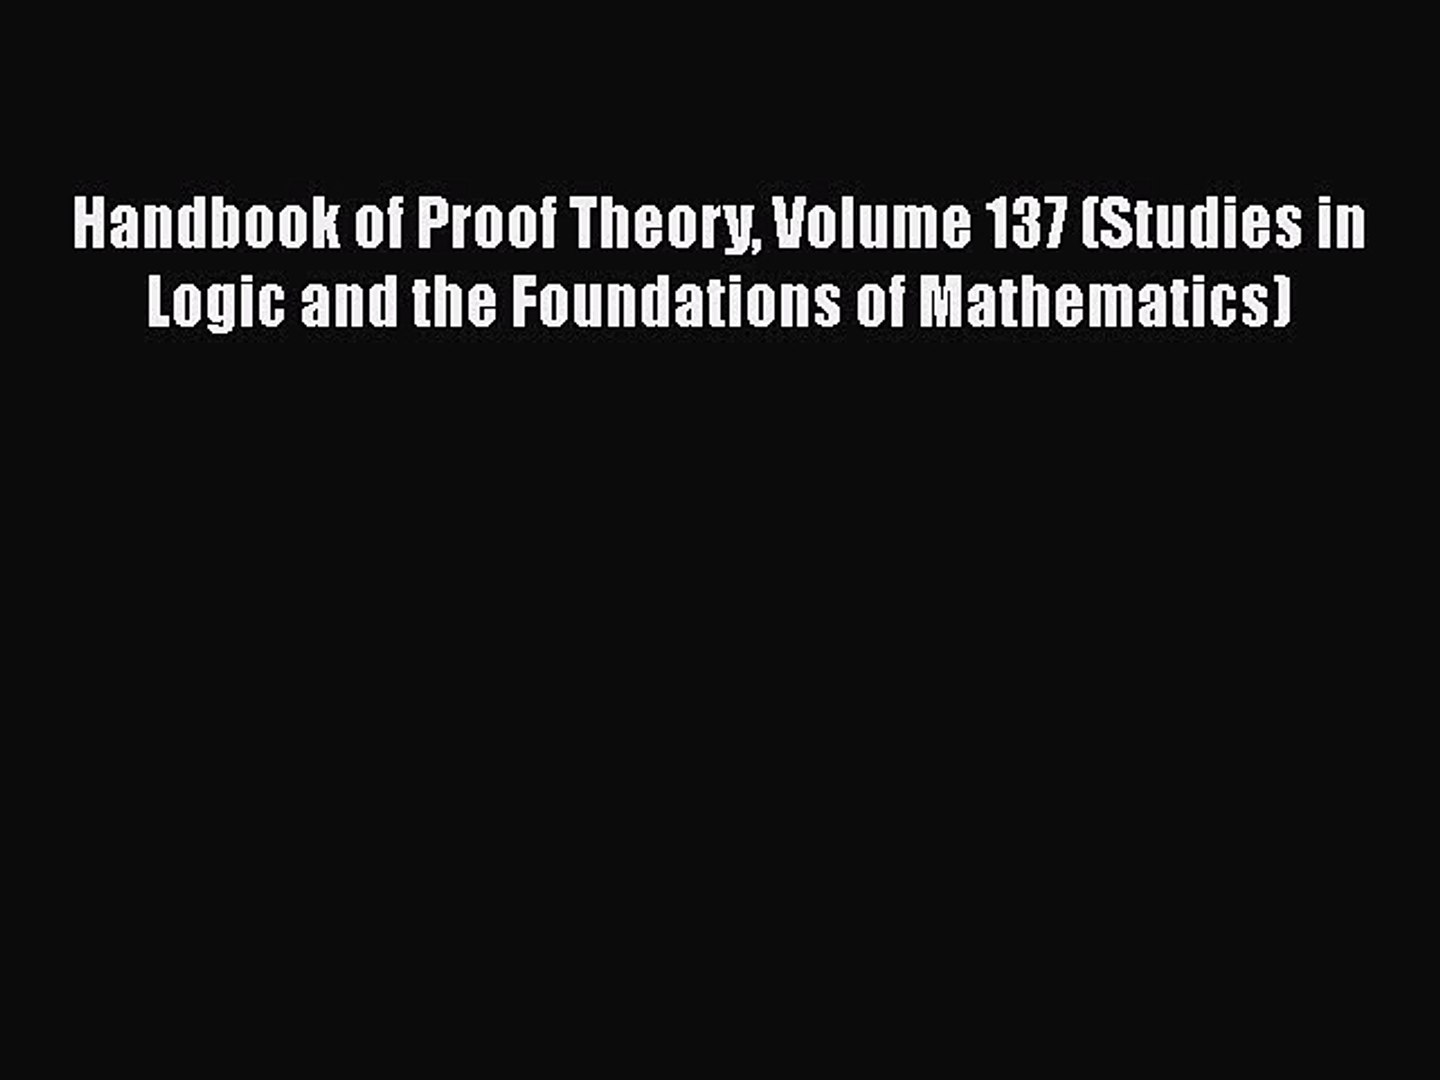 Handbook of Computability Theory (Studies in Logic and the Foundations of Mathematics)